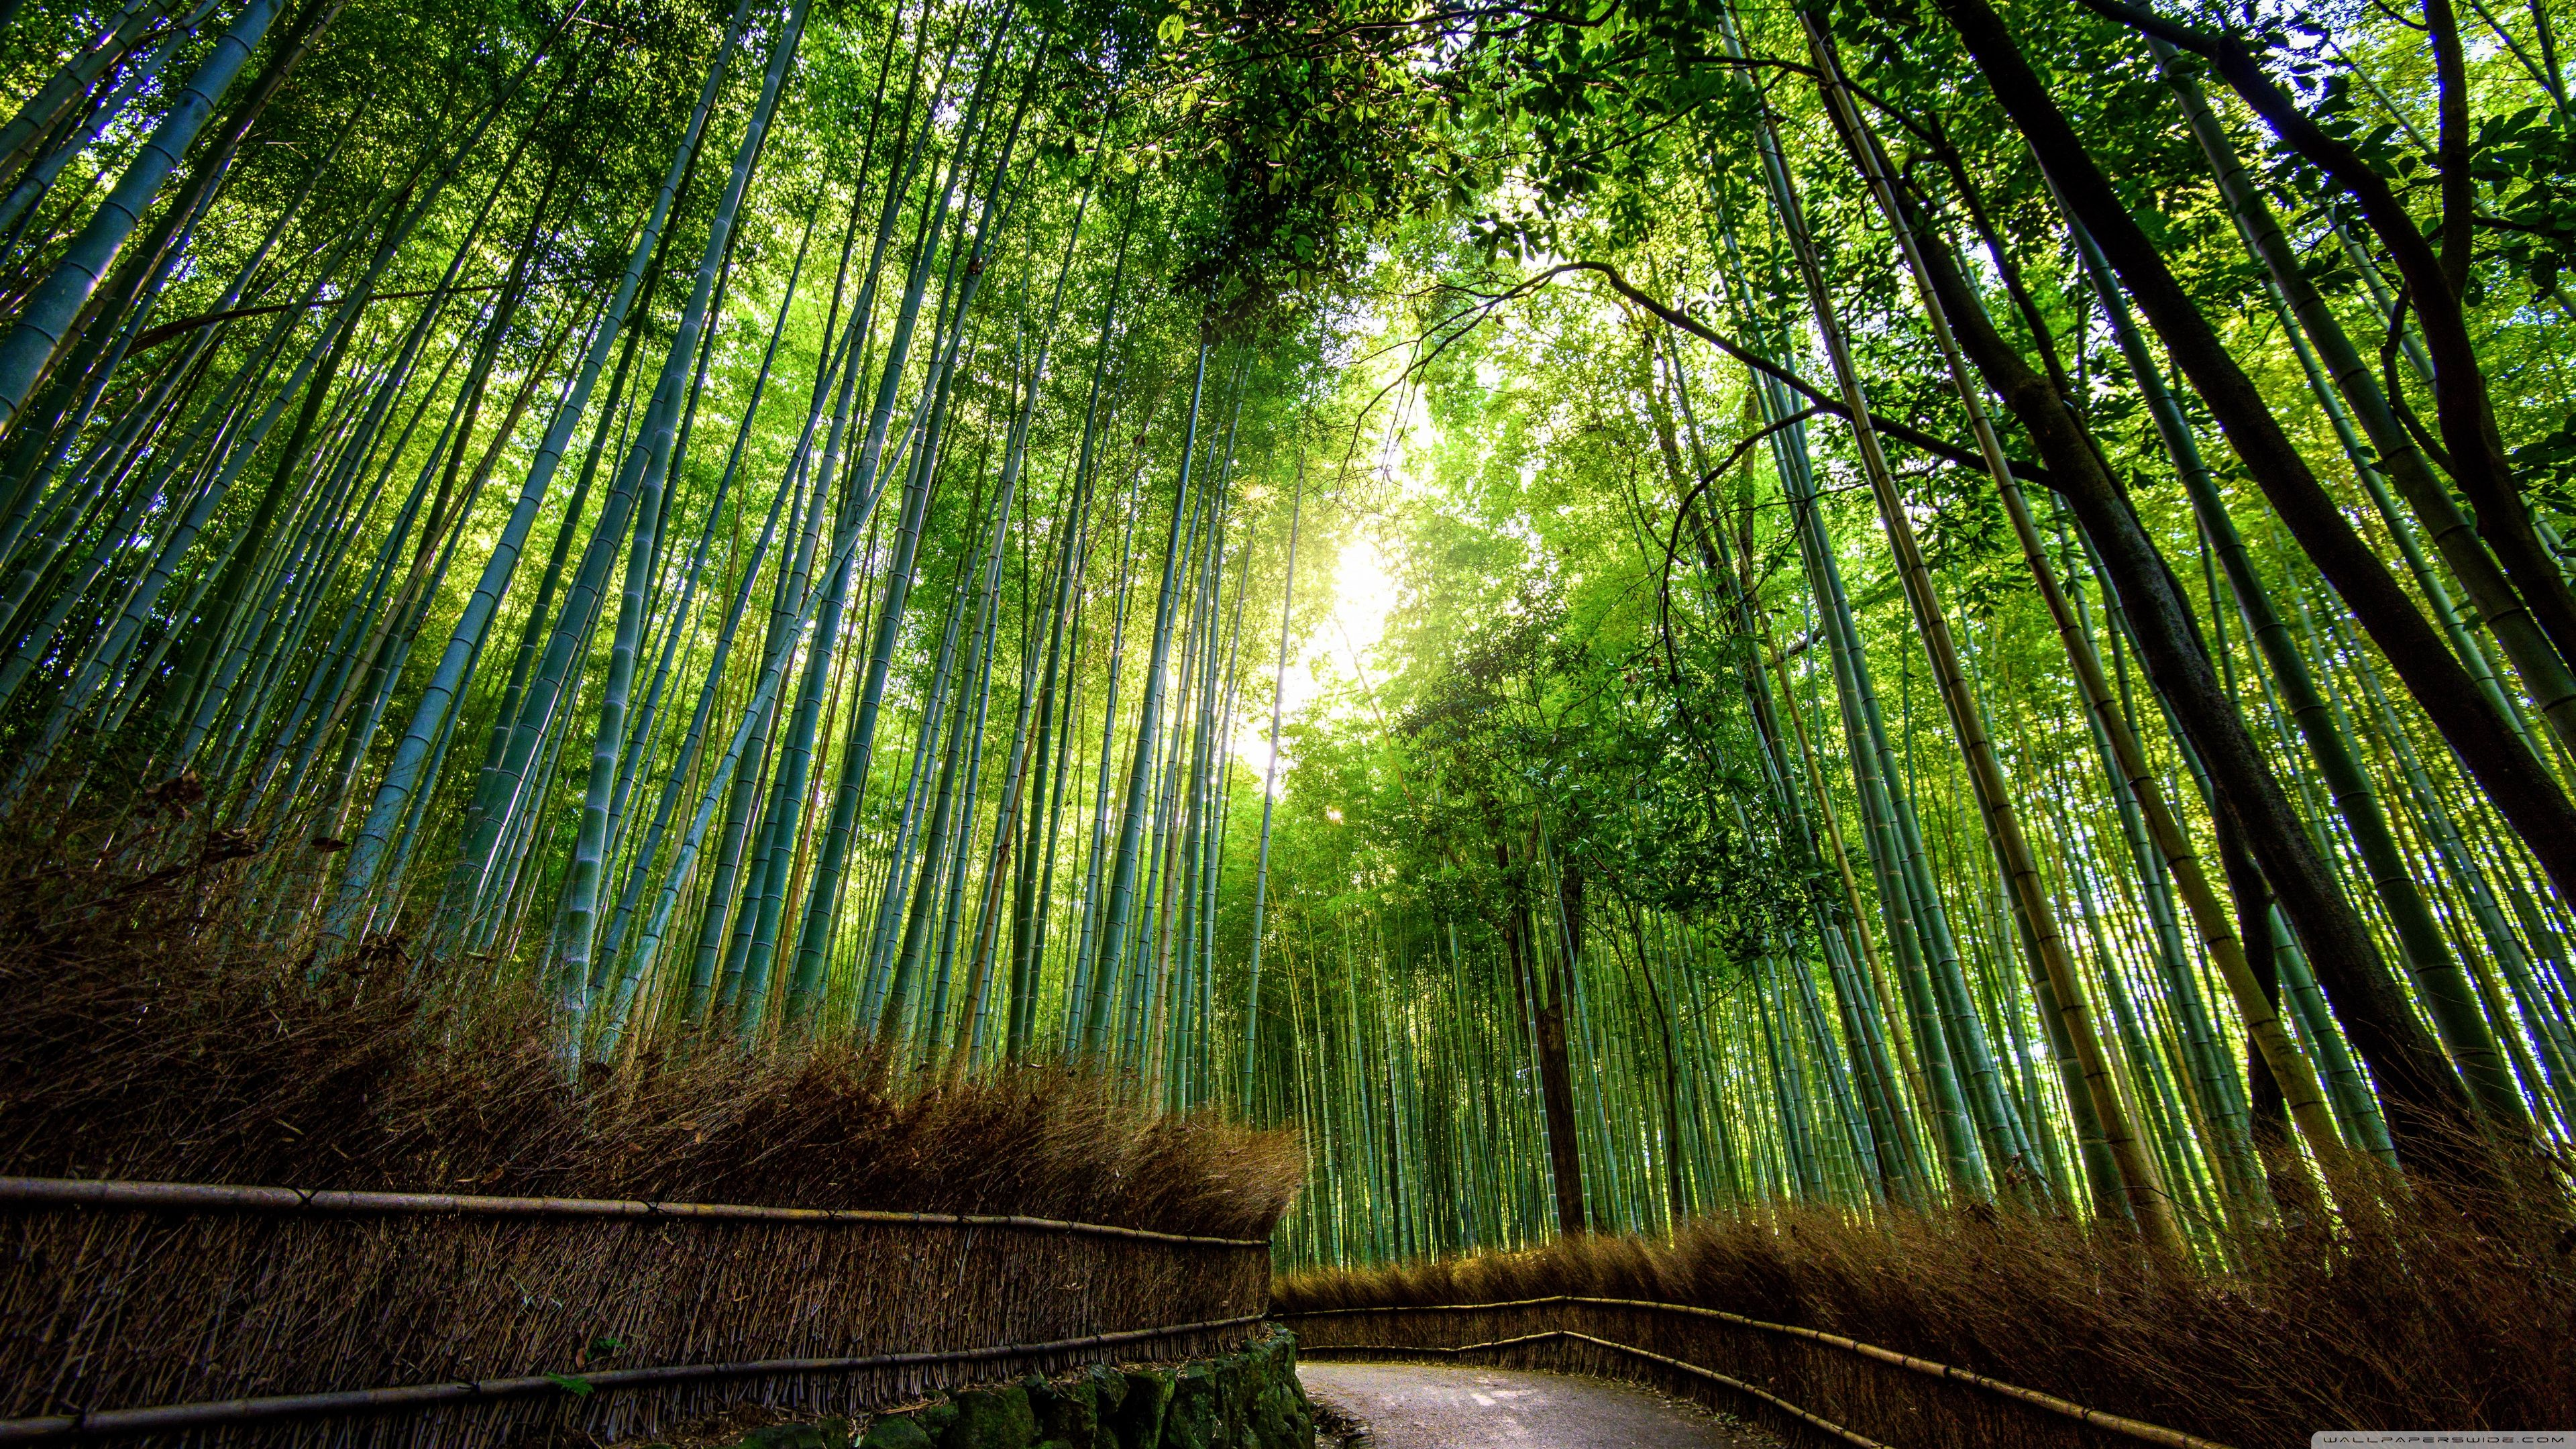 Relaxing HD Wallpapers - Japanese Bamboo Forest